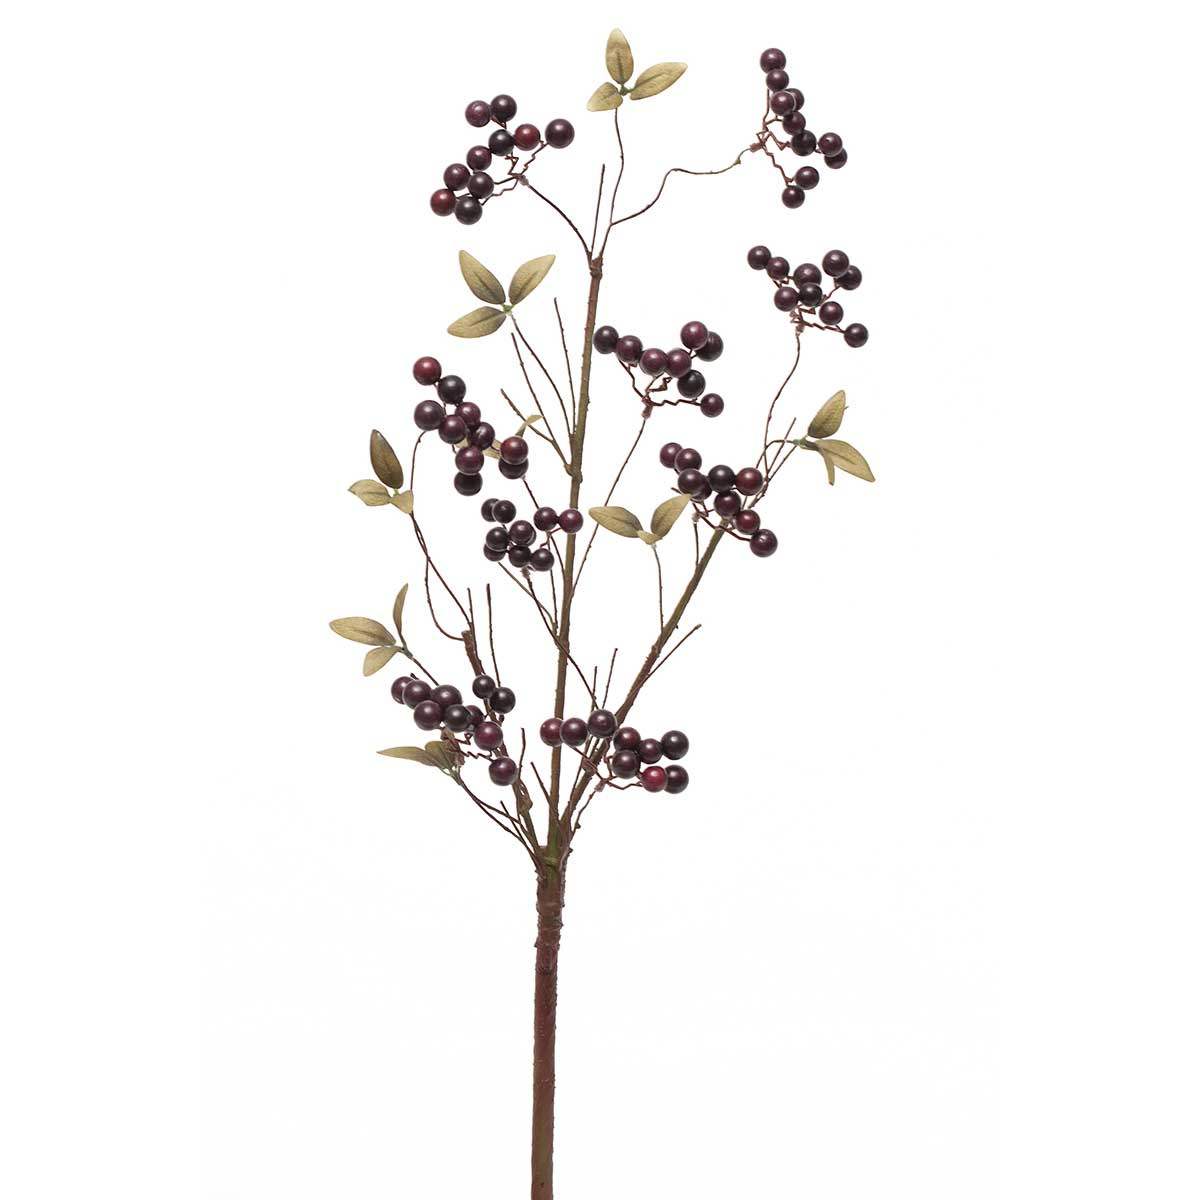 Faux Plump Cluster Berry Branch with Leaves